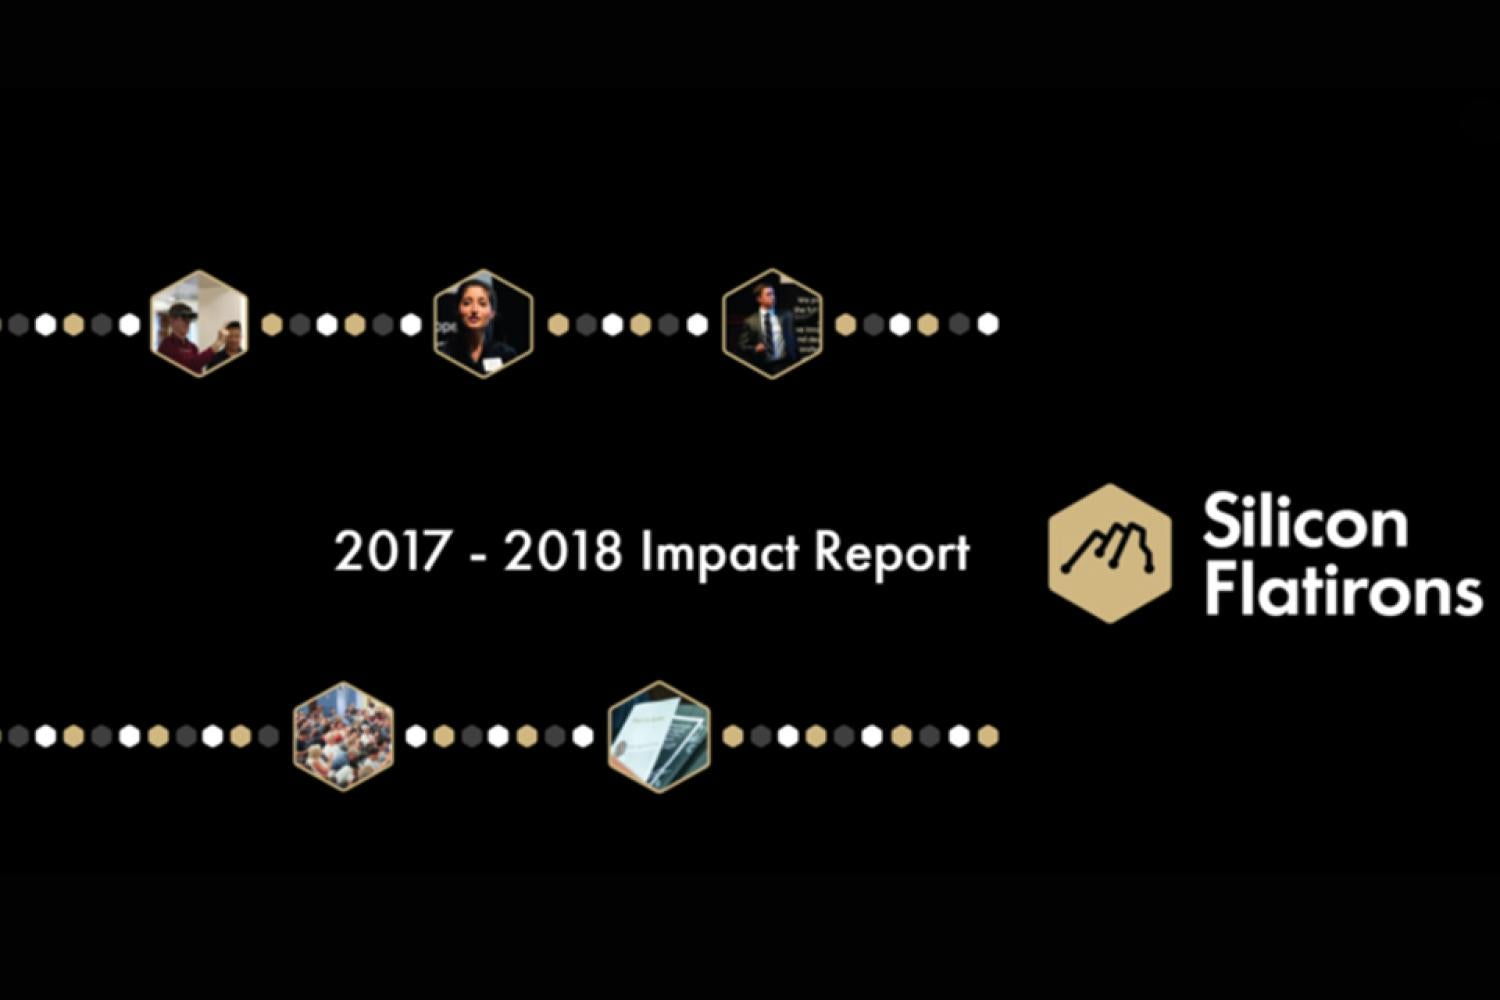 Silicon Flatirons Impact Report